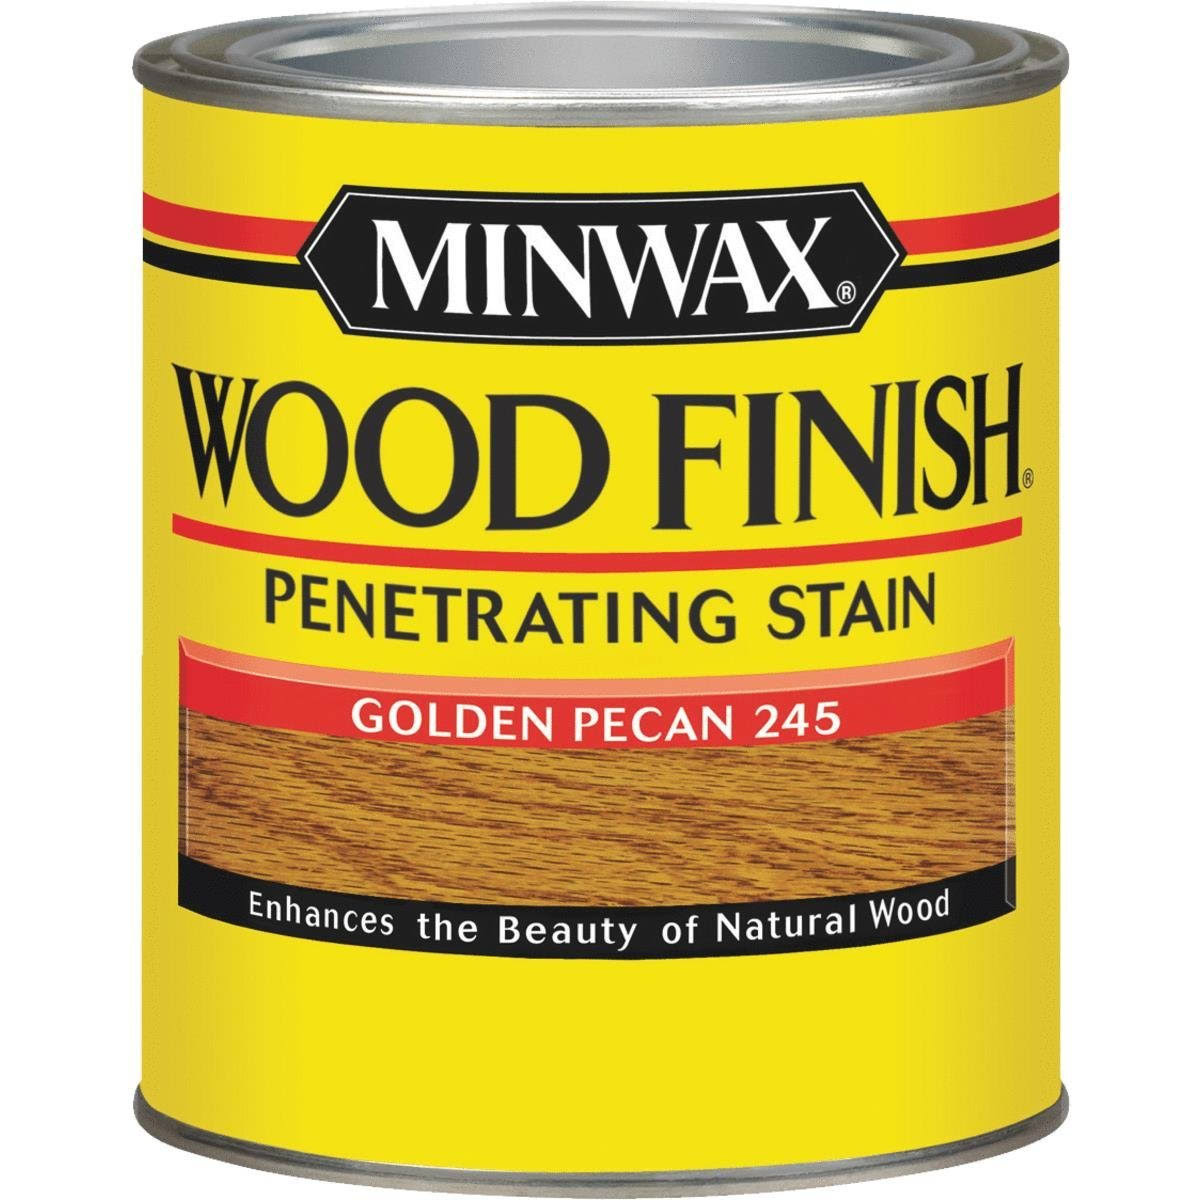 Minwax Wood Finish 1-Quart Golden Pecan Oil Wood Stain